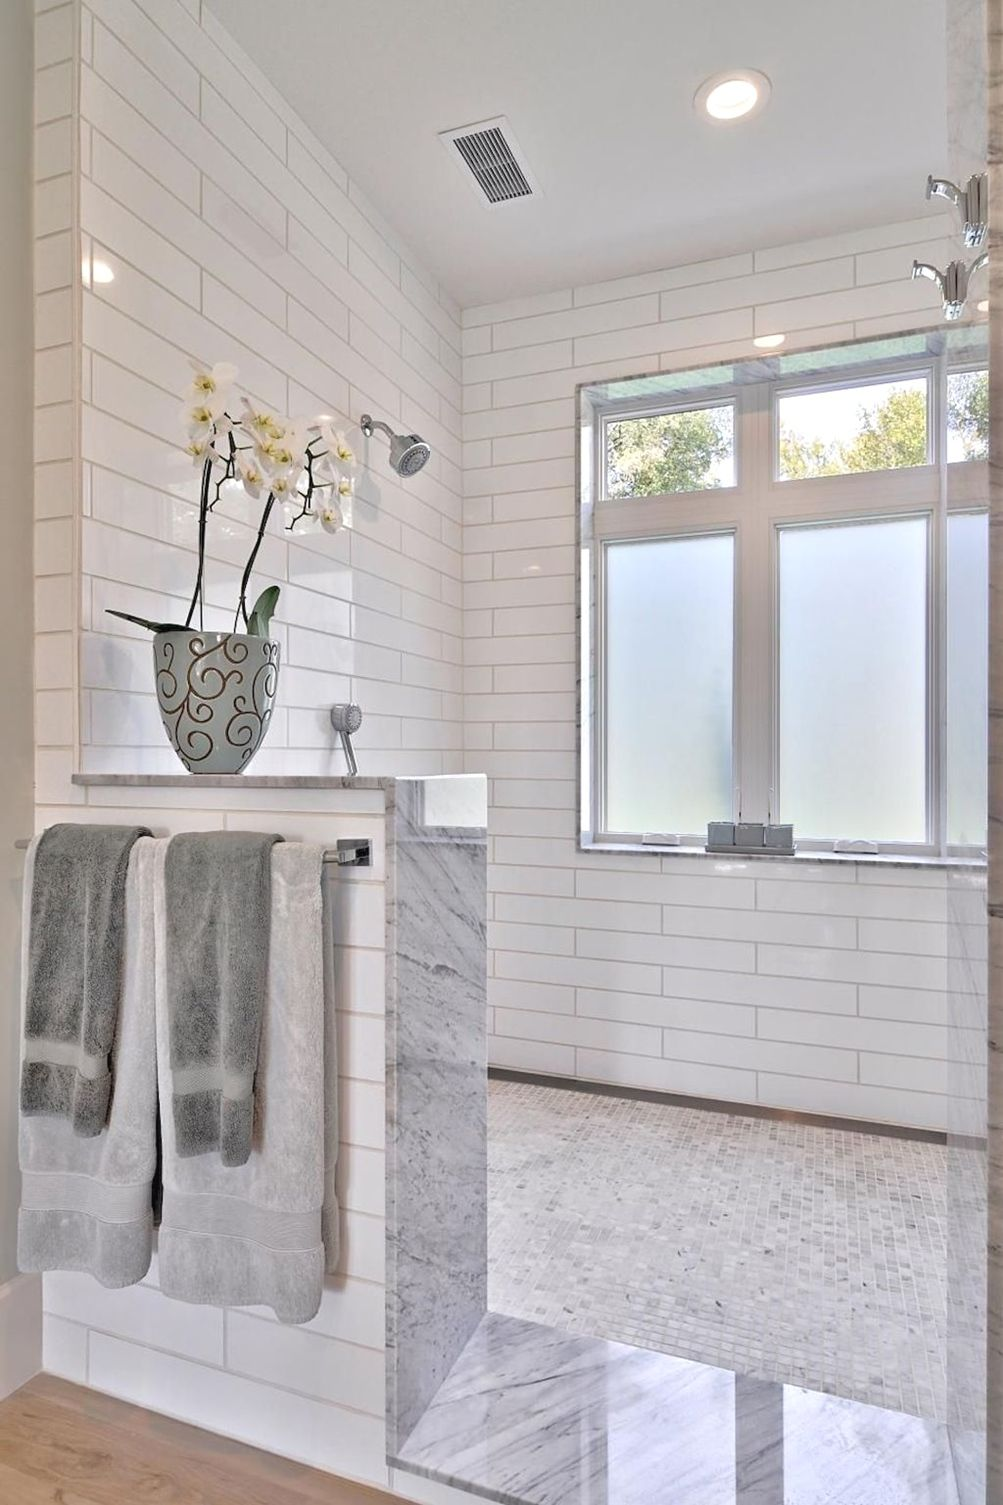 Home And Bath Remodeling With Images Simple Bathroom Remodel Farmhouse Shower Diy Bathroom Remodel